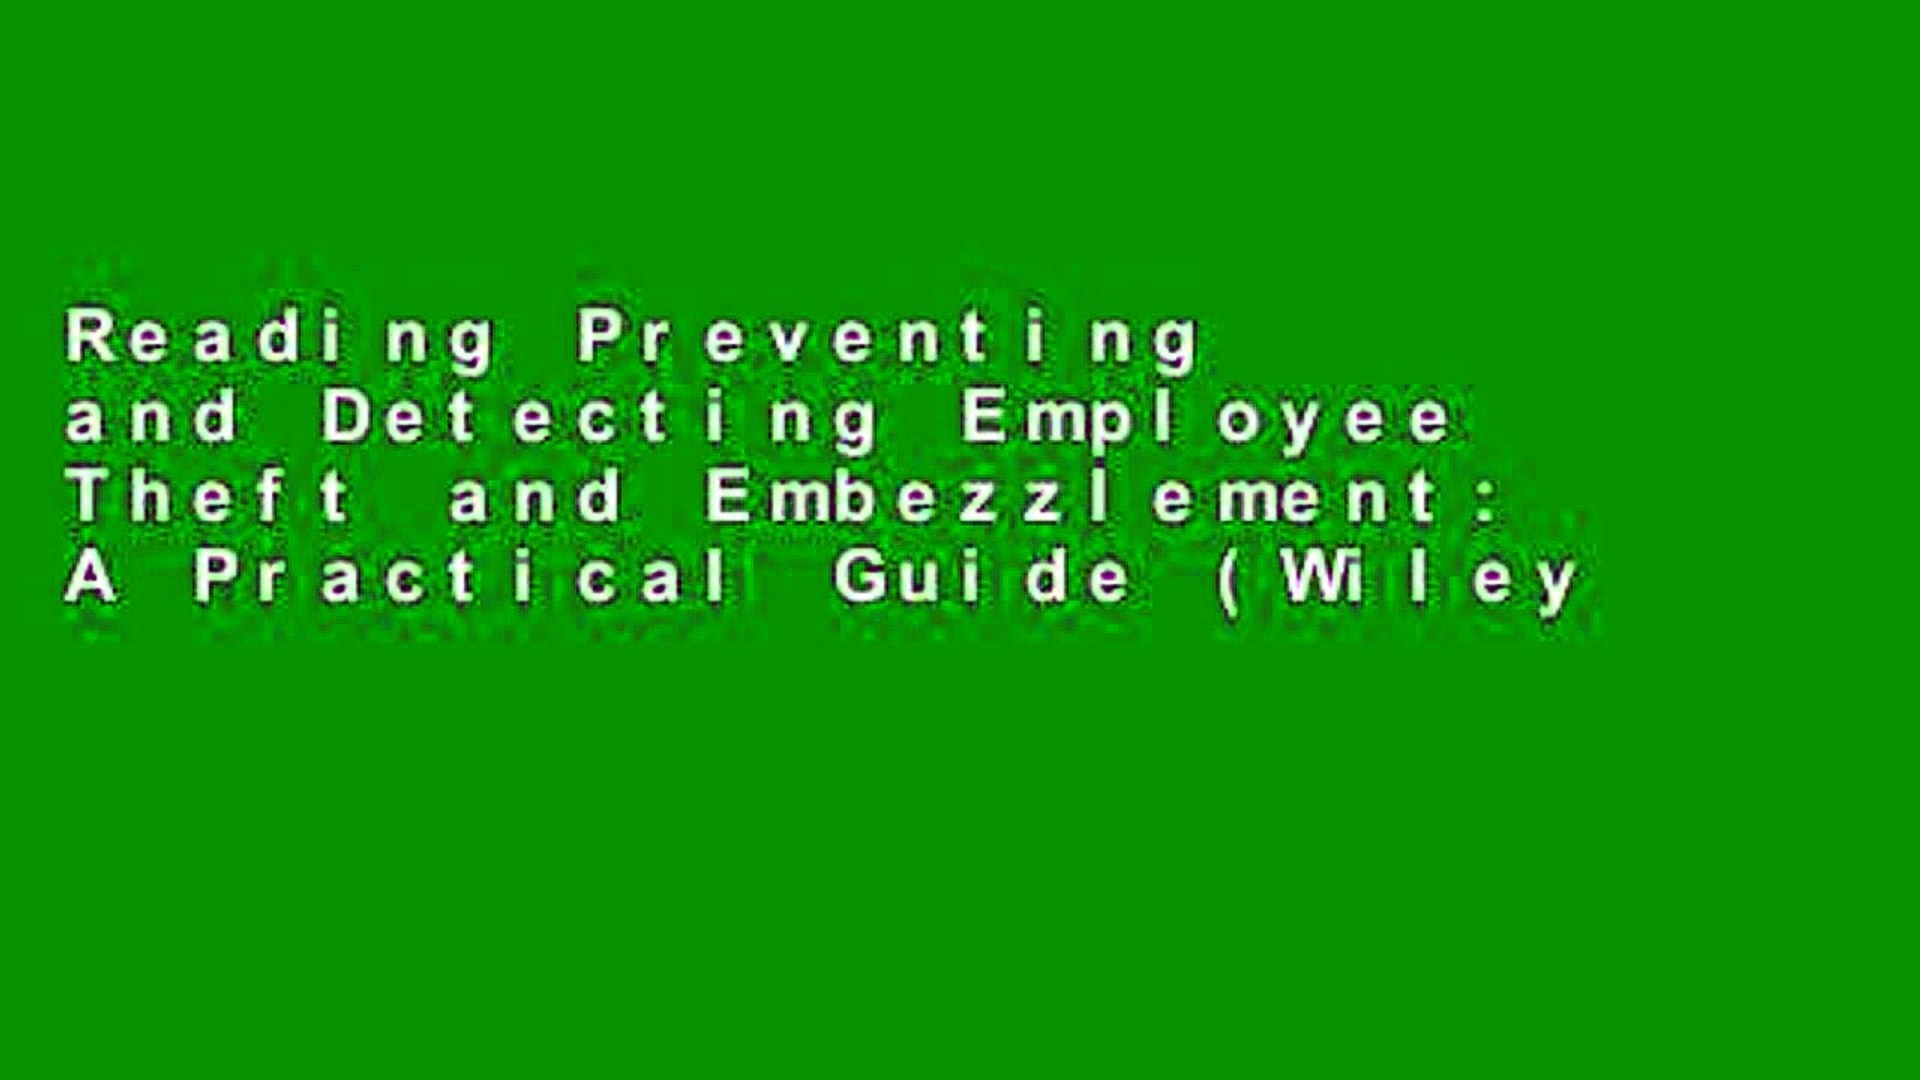 Preventing and detecting employee theft and embezzlement : a practical guide